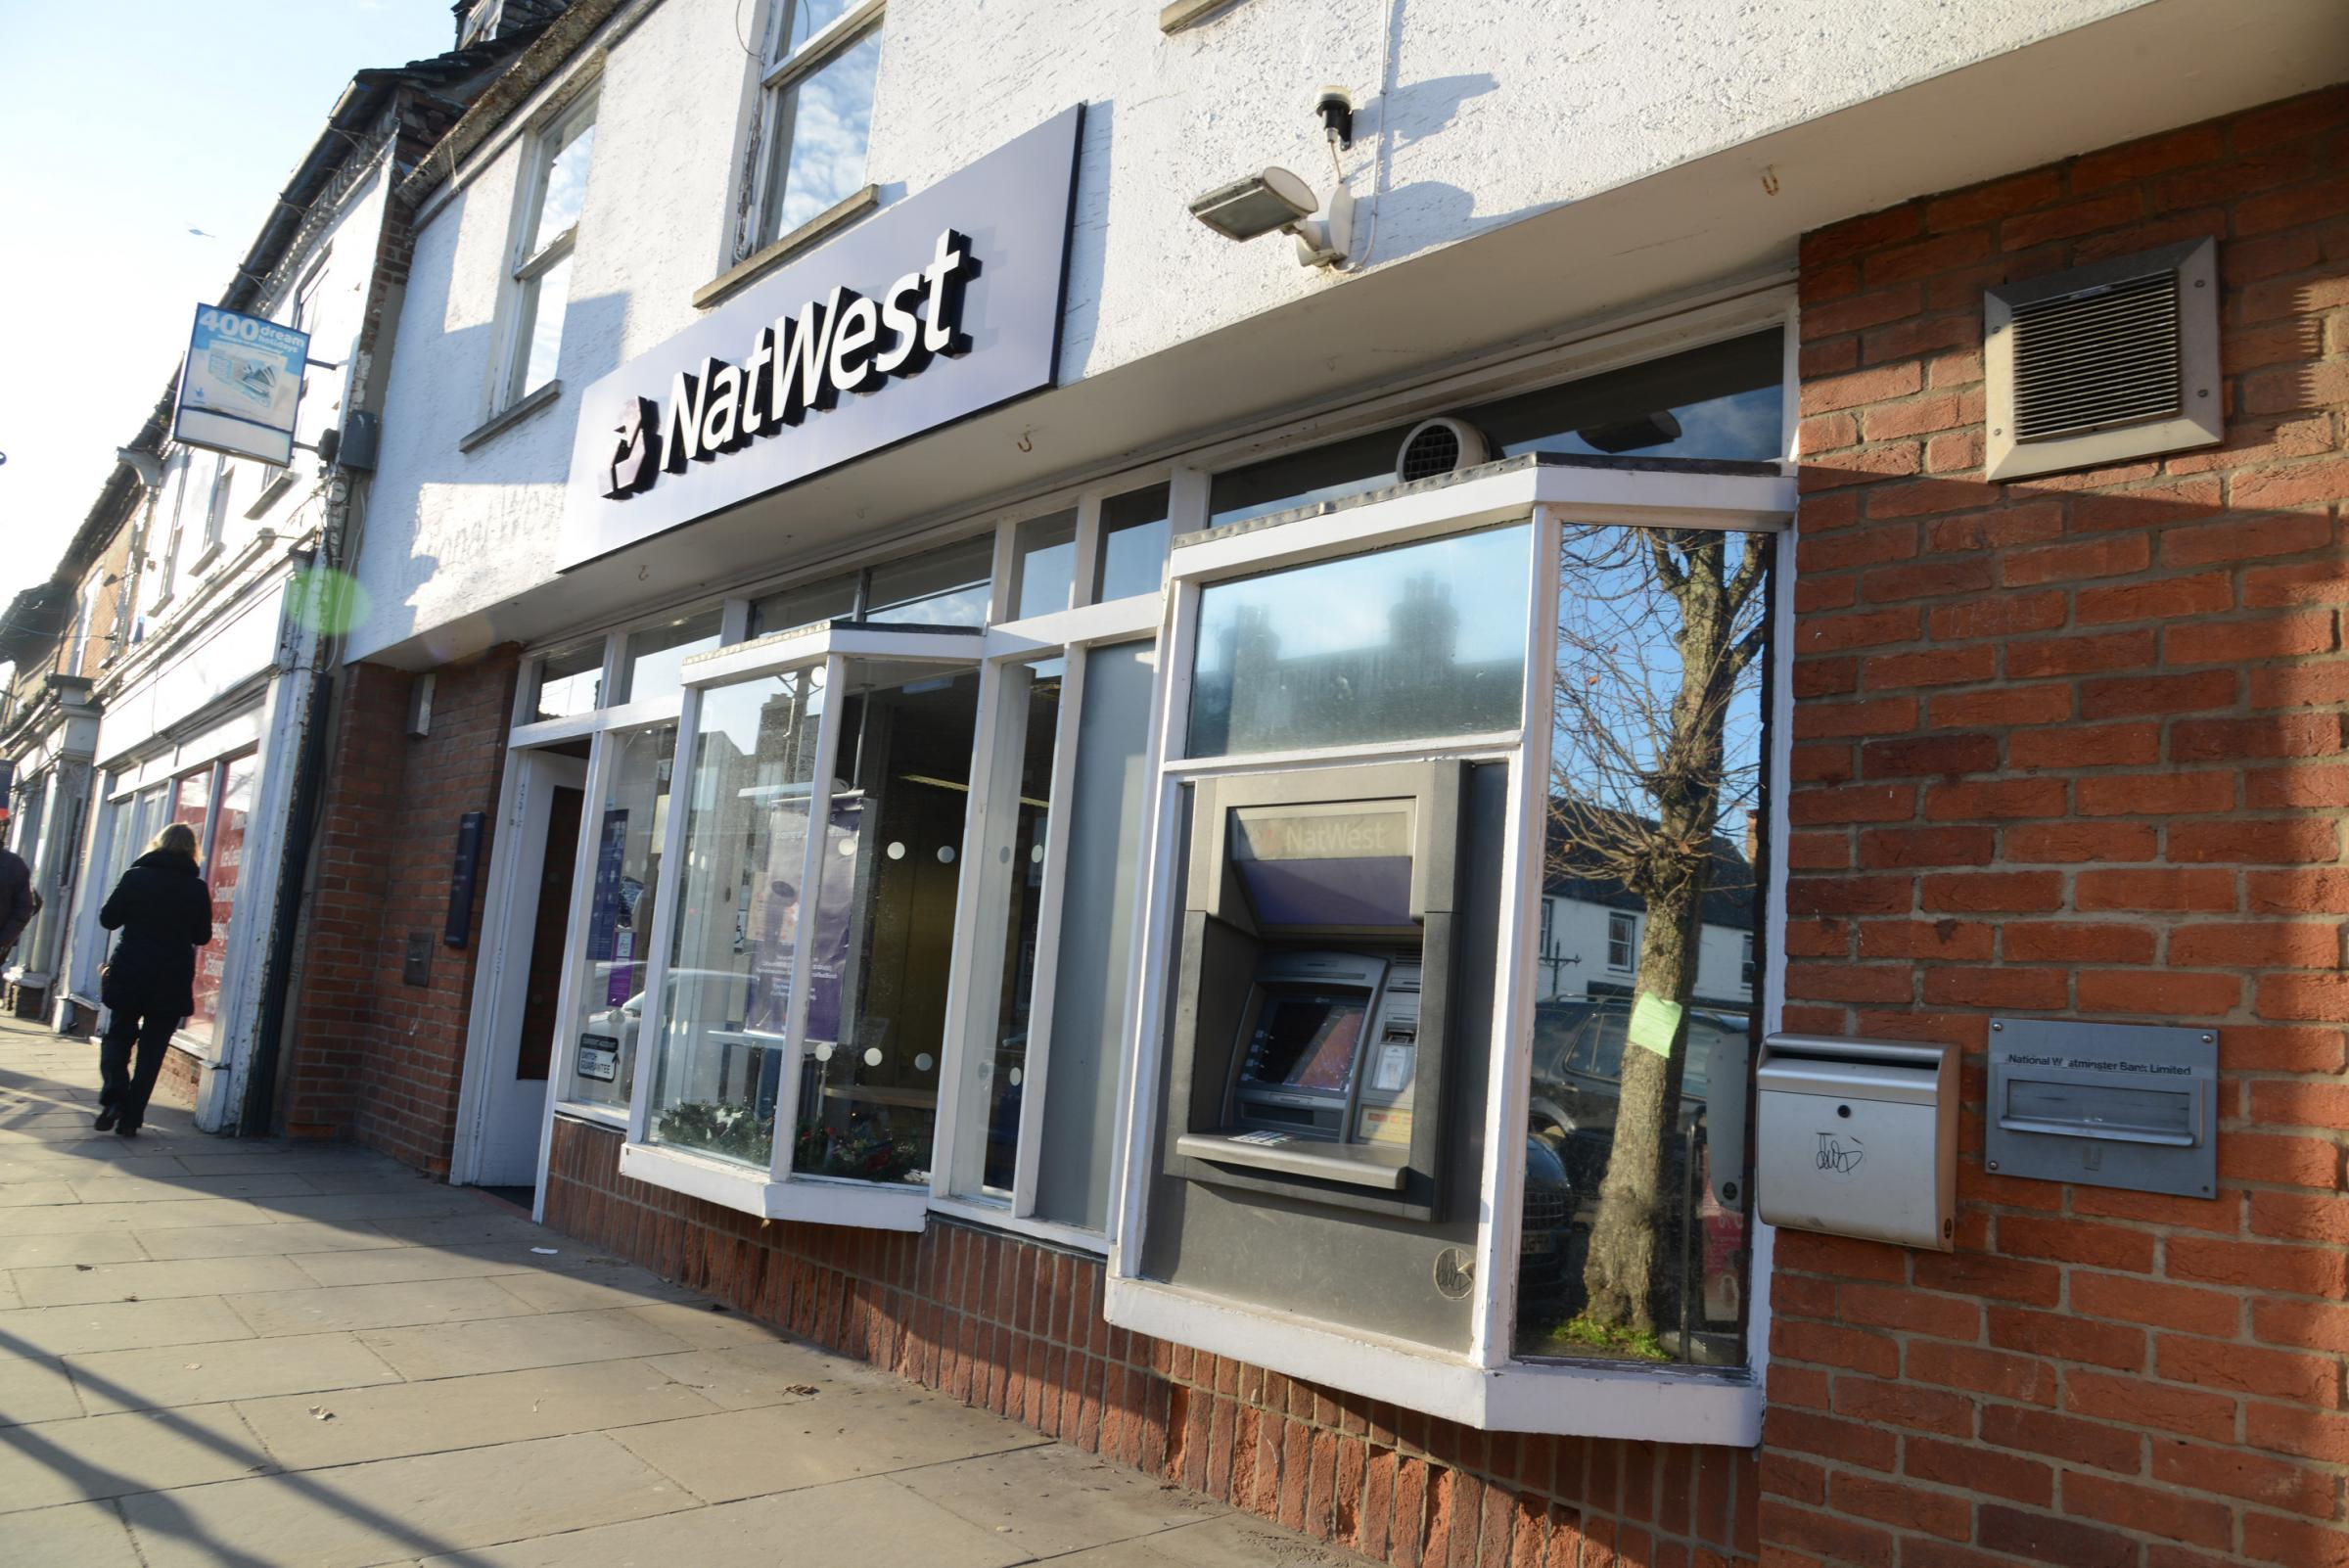 Natwest, Royal Wootton Basett. Picture: THOMAS KELSEY